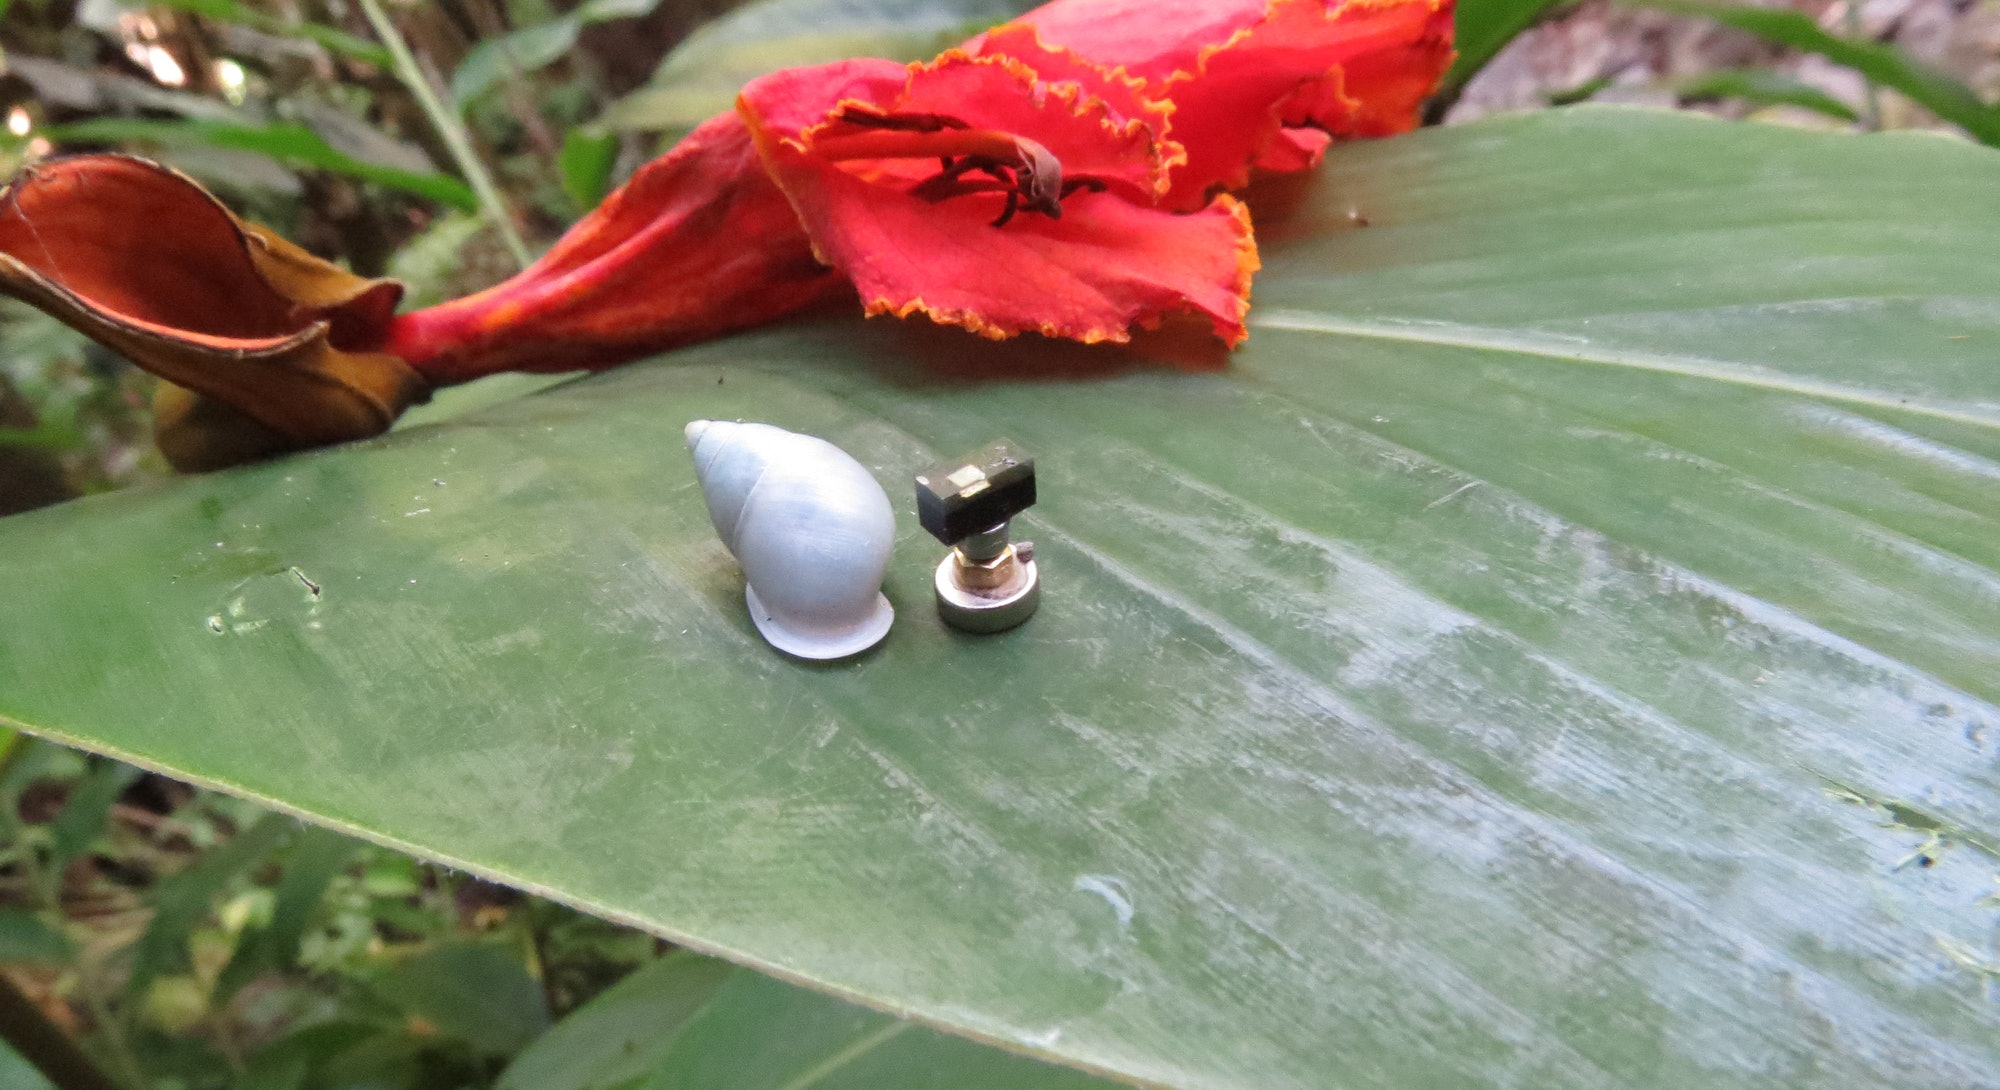 A small white-shelled snail resting on a leaf next to a miniature computer.